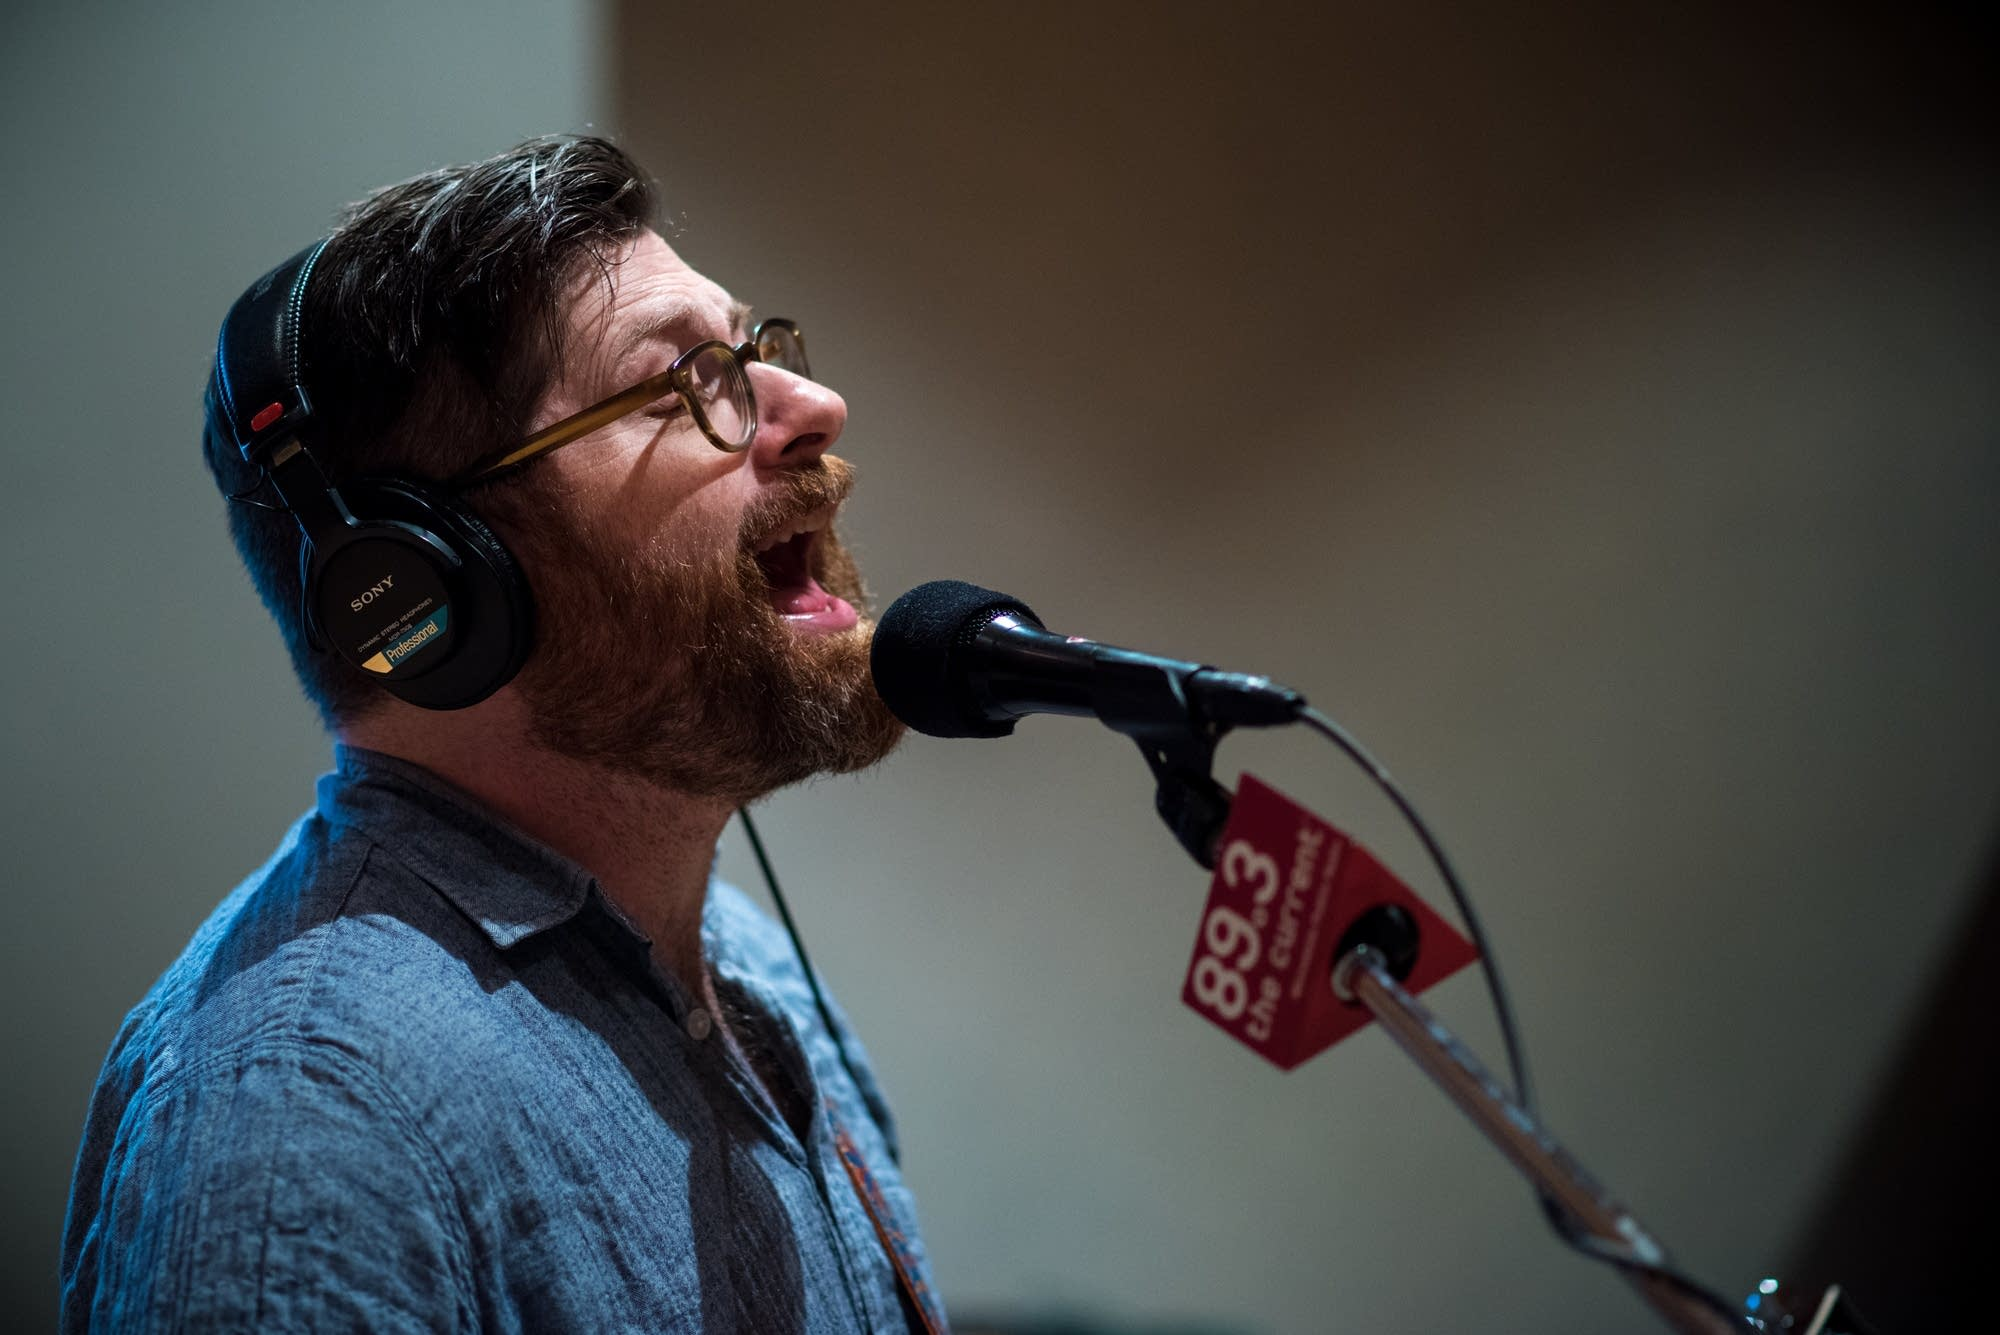 Colin Meloy of the Decemberists singing